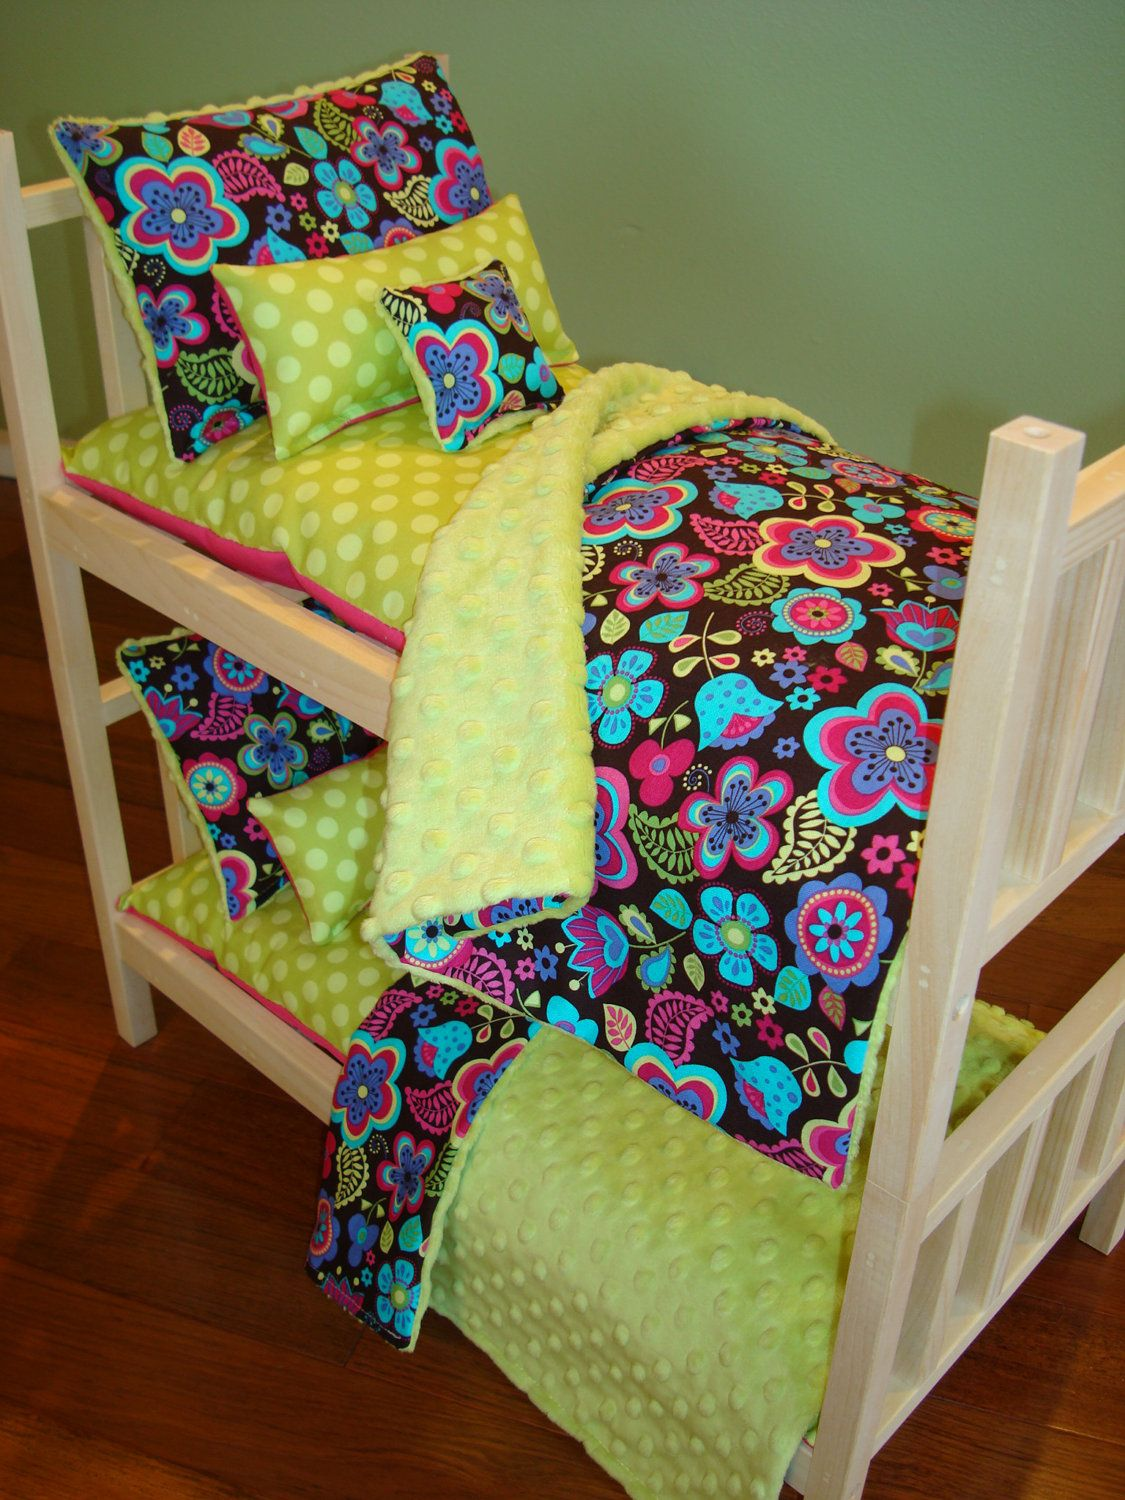 20 Off Sale 10 Piece Bunk Bed Bedding Set Fits American